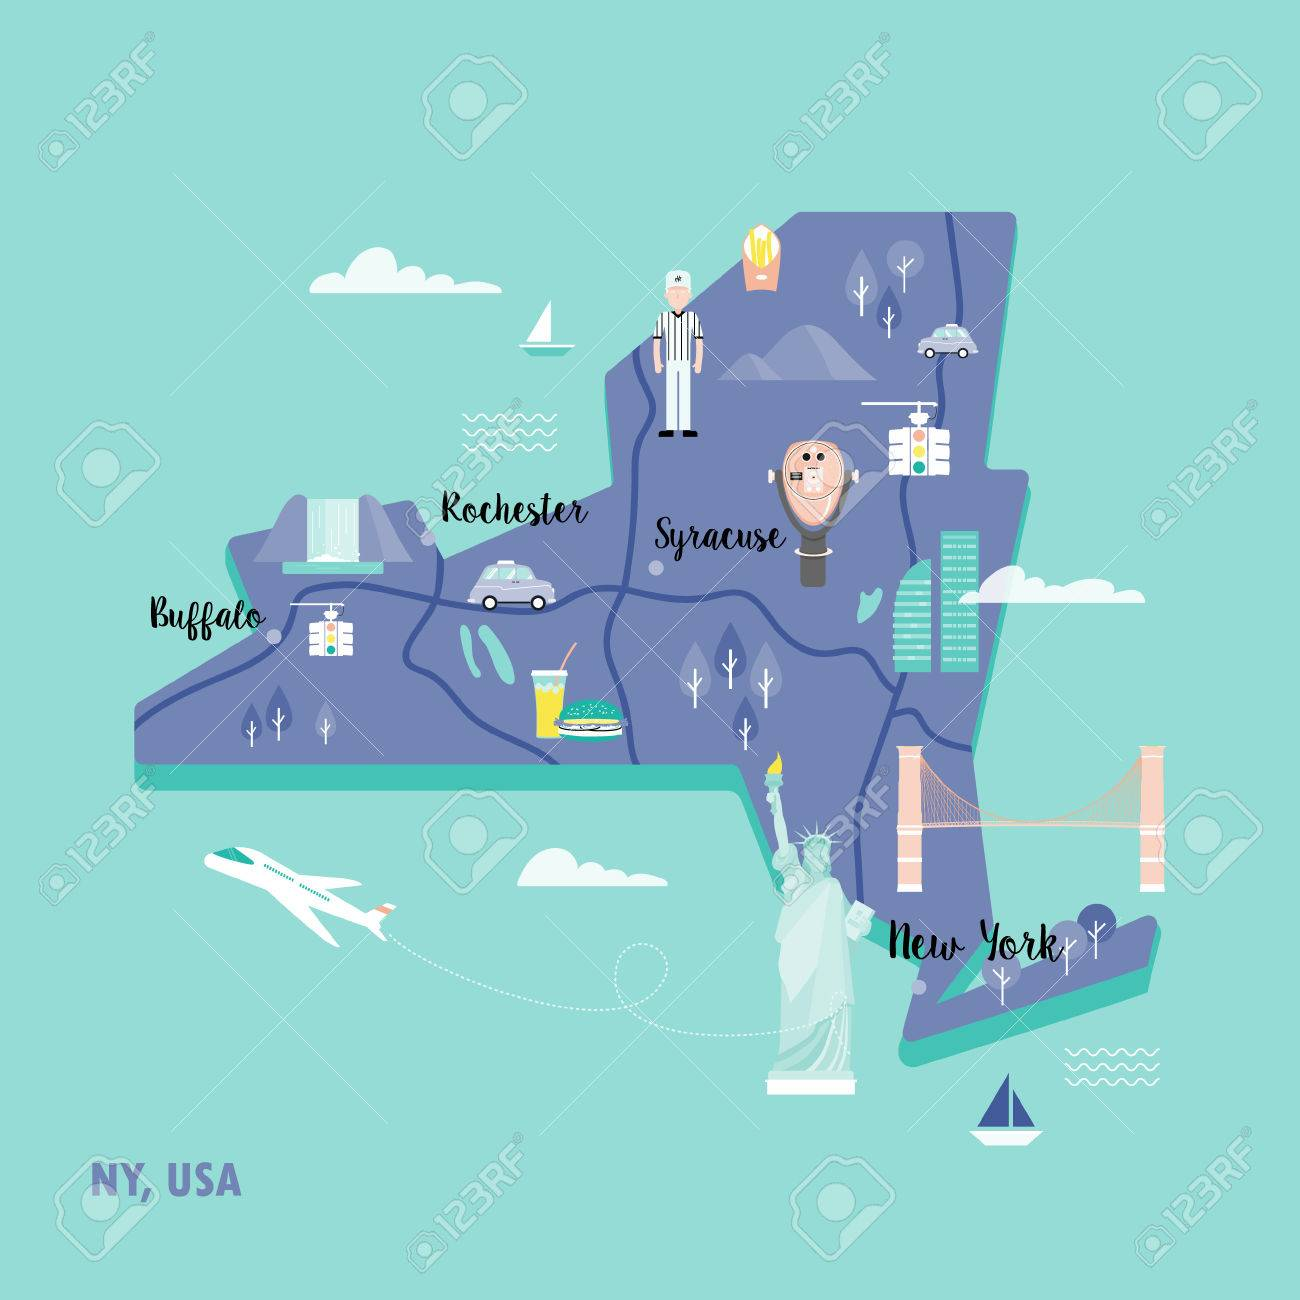 Map Of New York Landmarks.Colorful Map Of New York In Retro Style With Landmarks The Statue